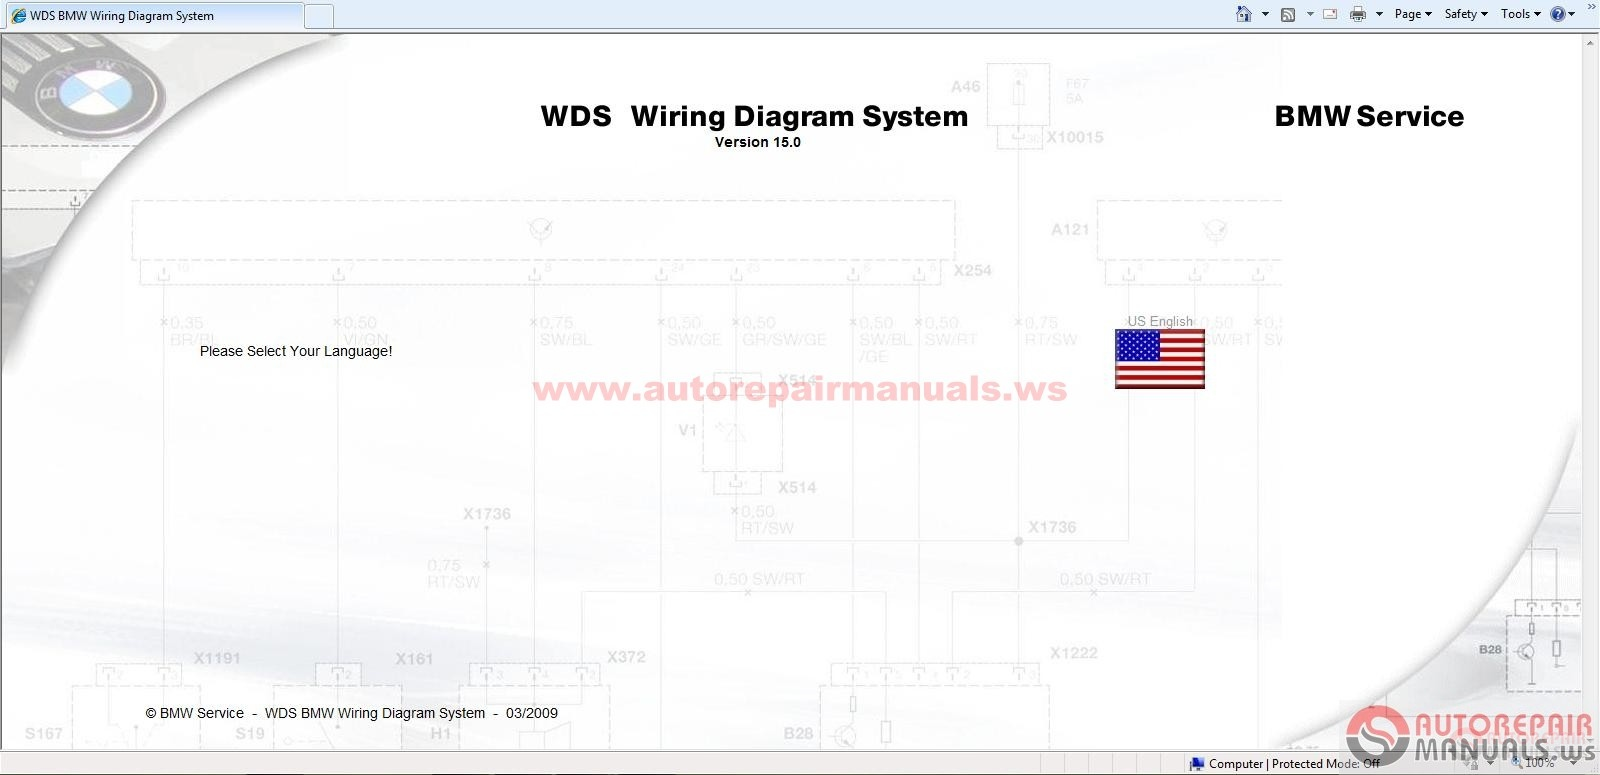 Bmw Wds V15 And Mini Wds V7 Wiring Diagram System